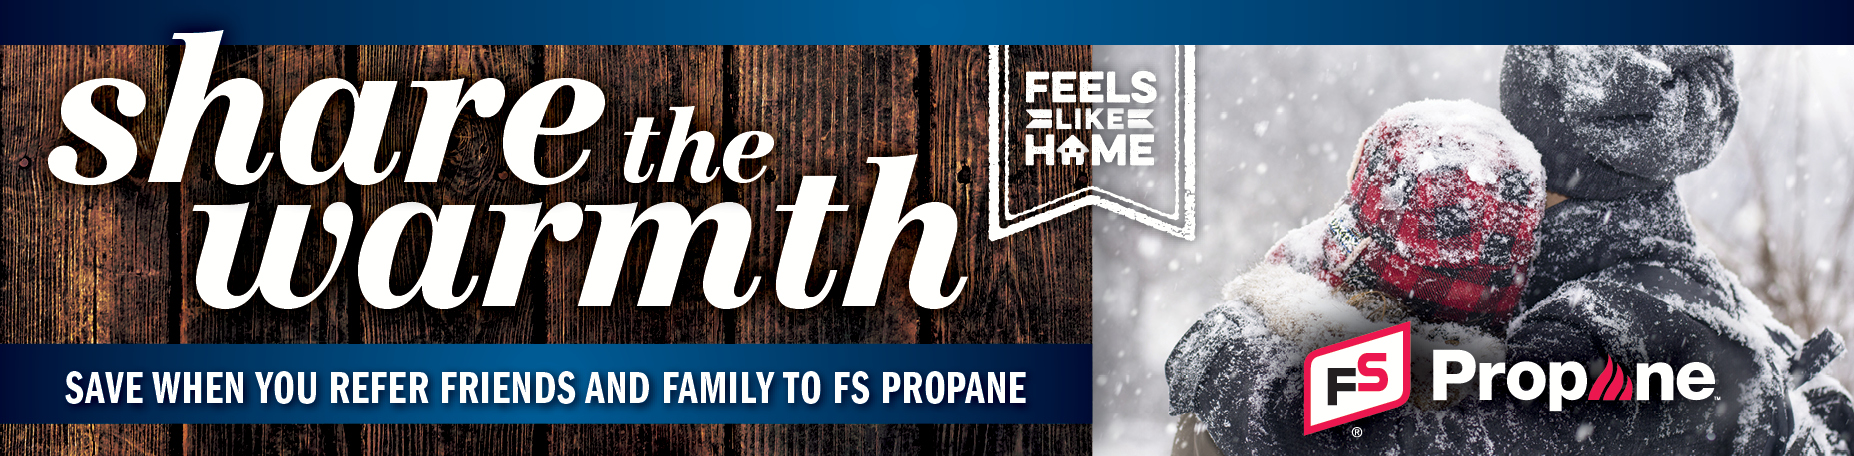 P101817 FS Propane web banners3 SHARE THE WARMTH (1)636843761064093594